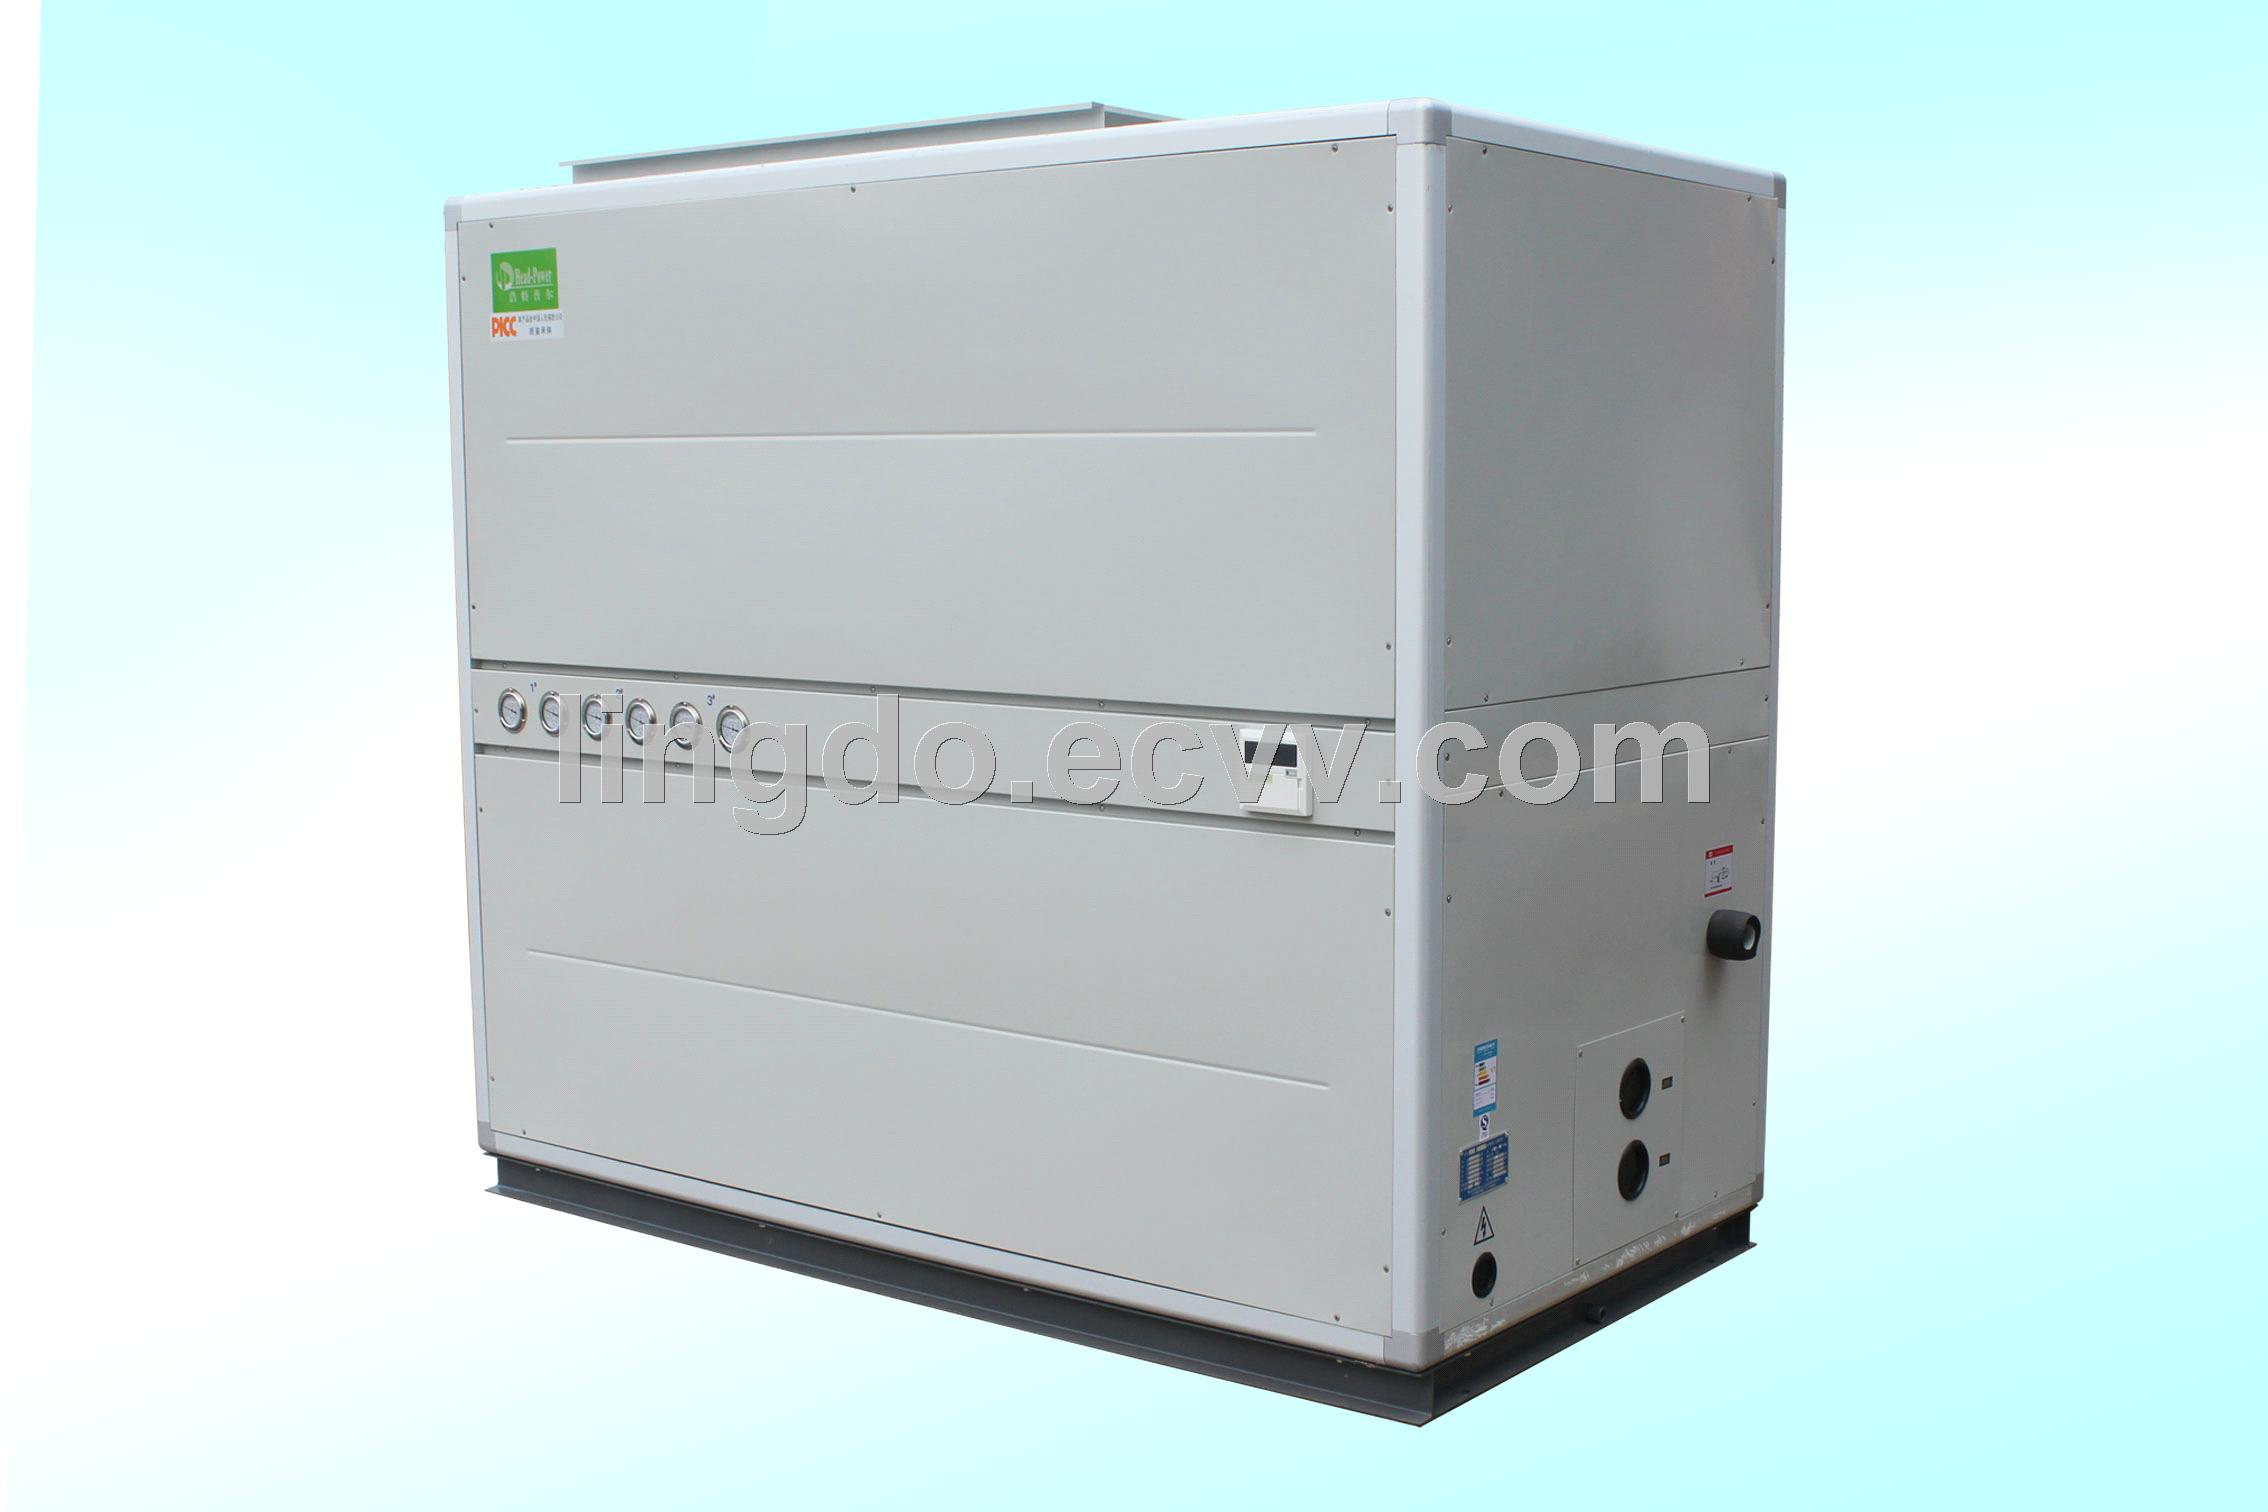 #479239 Water Cooled Air Conditioner (HWL) China Water Cooled  Most Effective 7075 Wall Mount Package Ac Units pictures with 2268x1512 px on helpvideos.info - Air Conditioners, Air Coolers and more